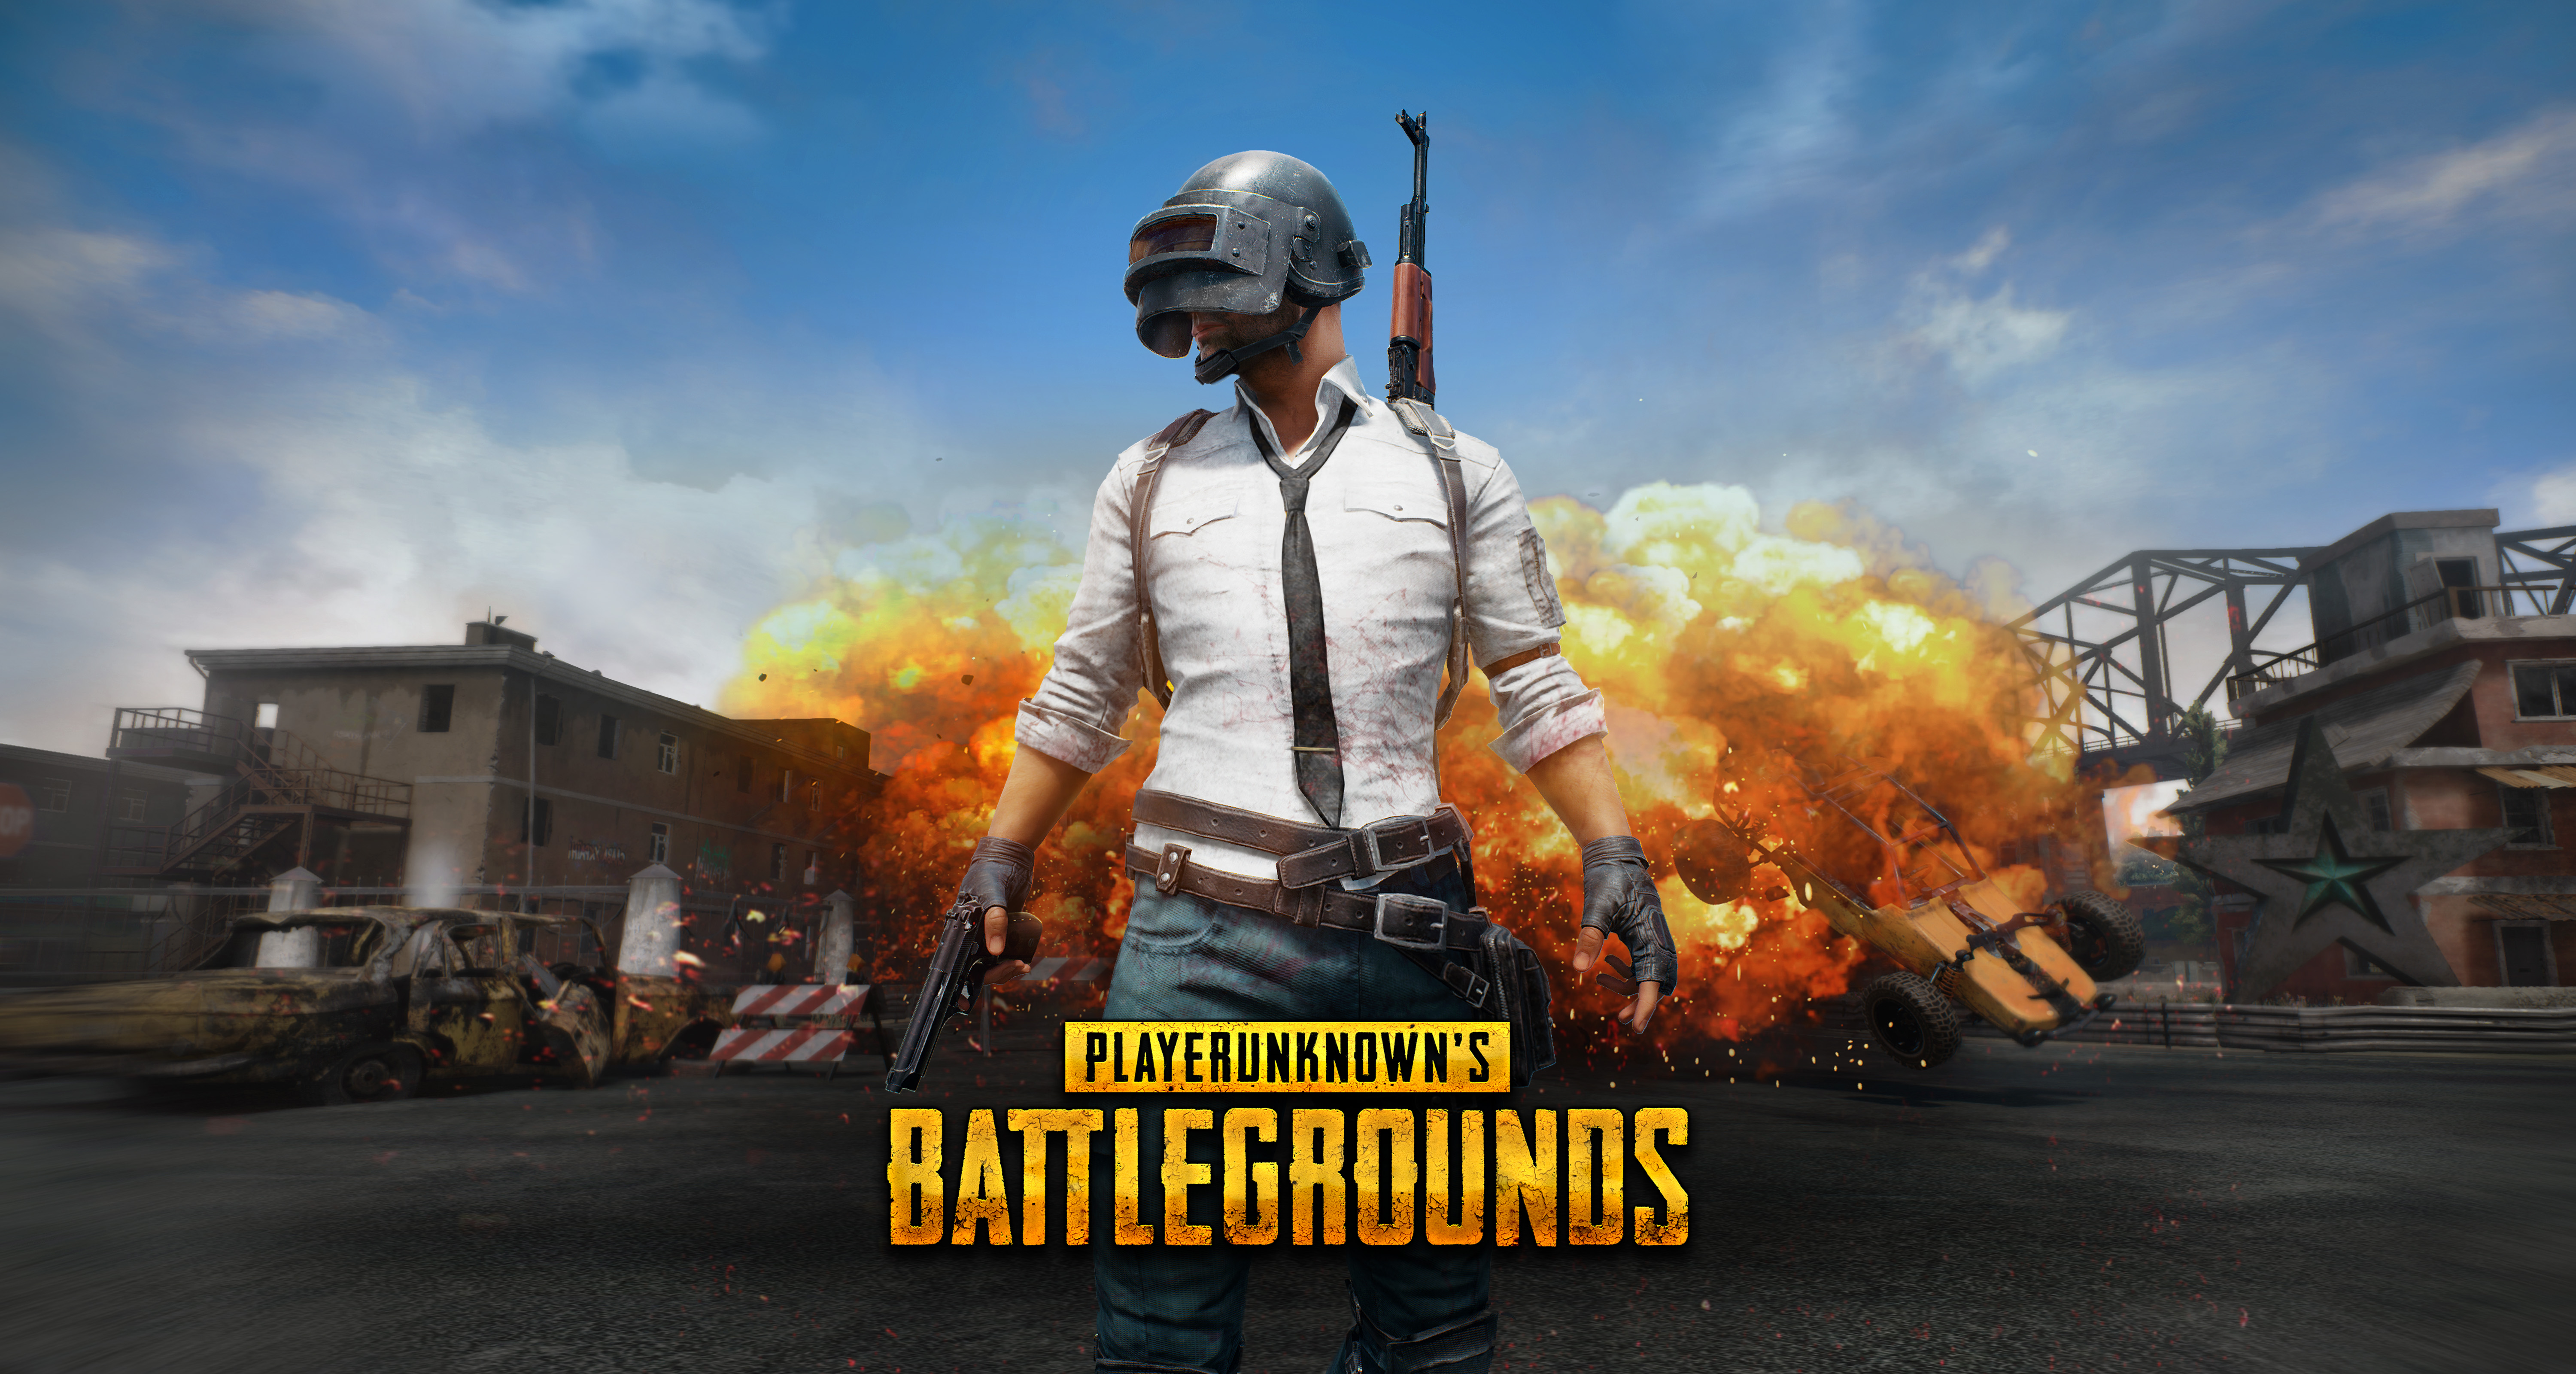 Wallpaper Playerunknown S Battlegrounds 2017 4k Games: PlayerUnknowns Battlegrounds 4k 5k, HD Games, 4k